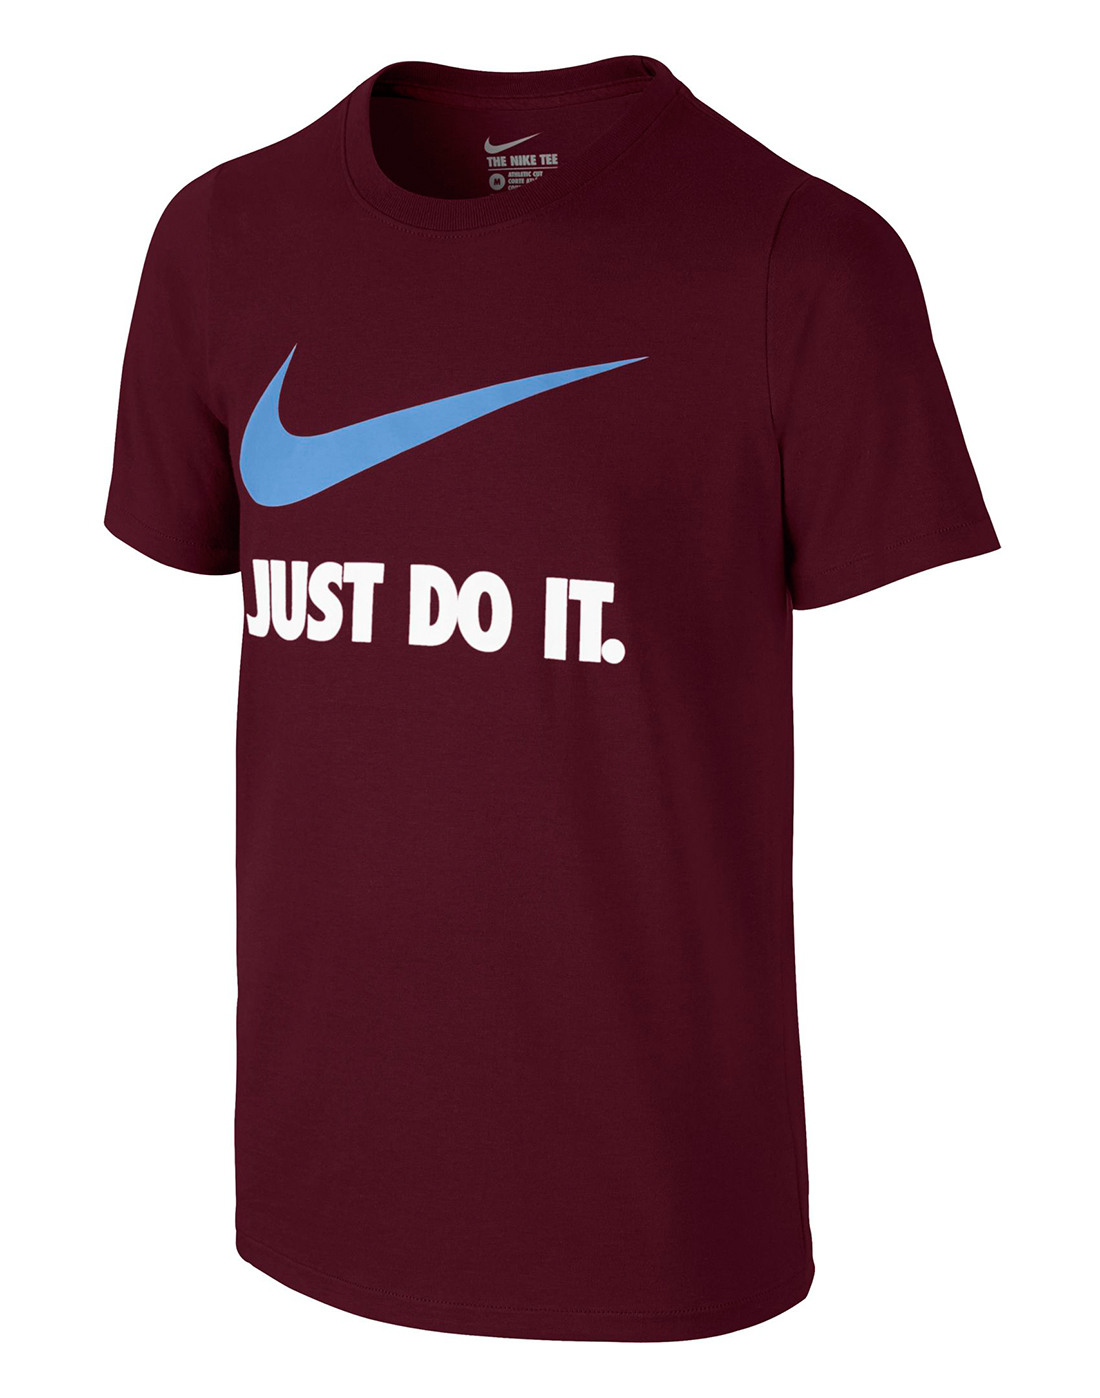 1bb7c8bef Boy's Nike 'Just Do It' T-Shirt | Life Style Sports